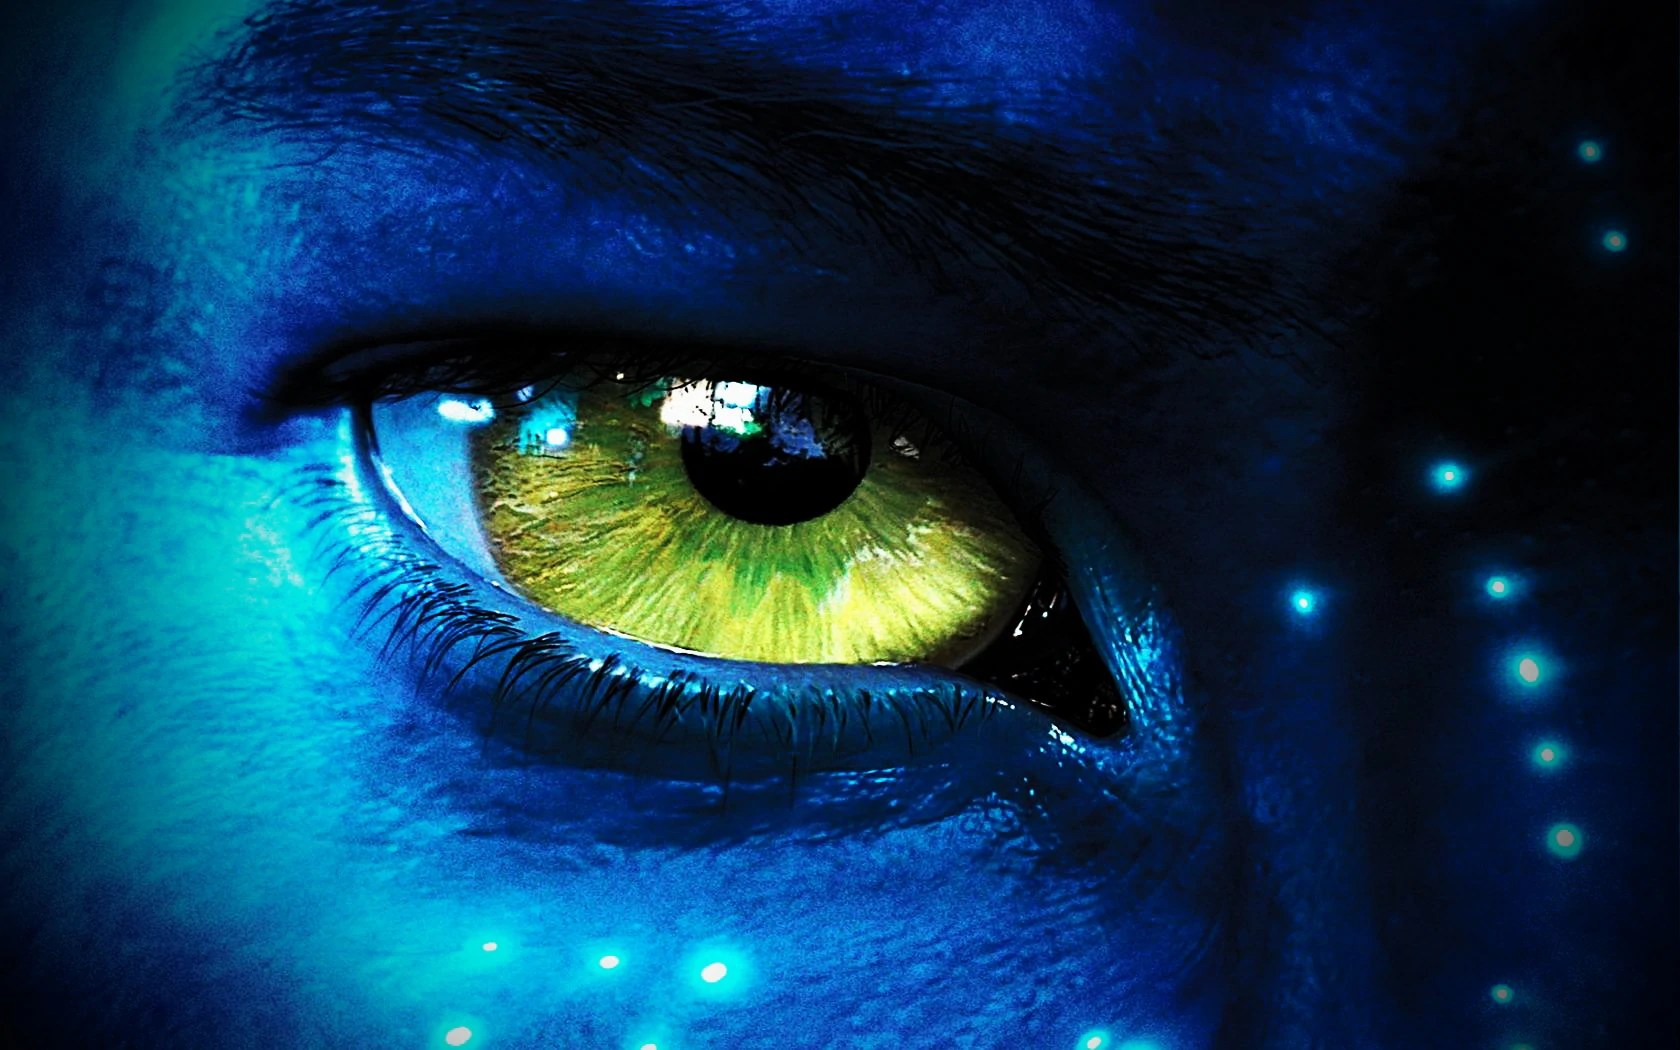 3d Live Wallpaper Hd For Android Image Avatar Face Hd Jpg Avatar Wiki Fandom Powered